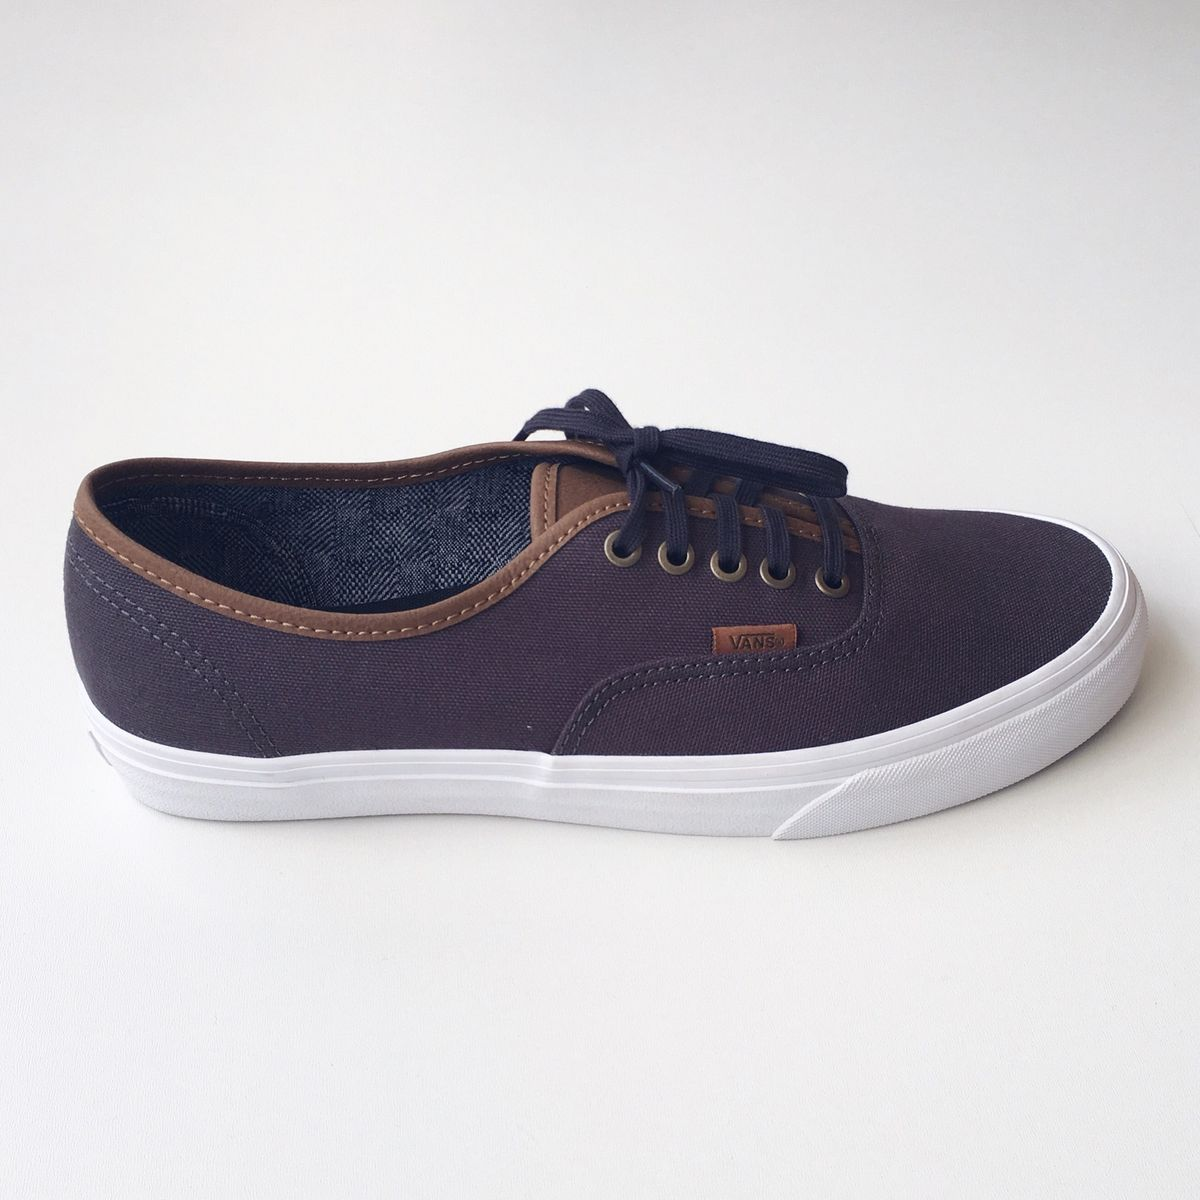 a92a4be69ce Tênis Vans Masculino Authentic